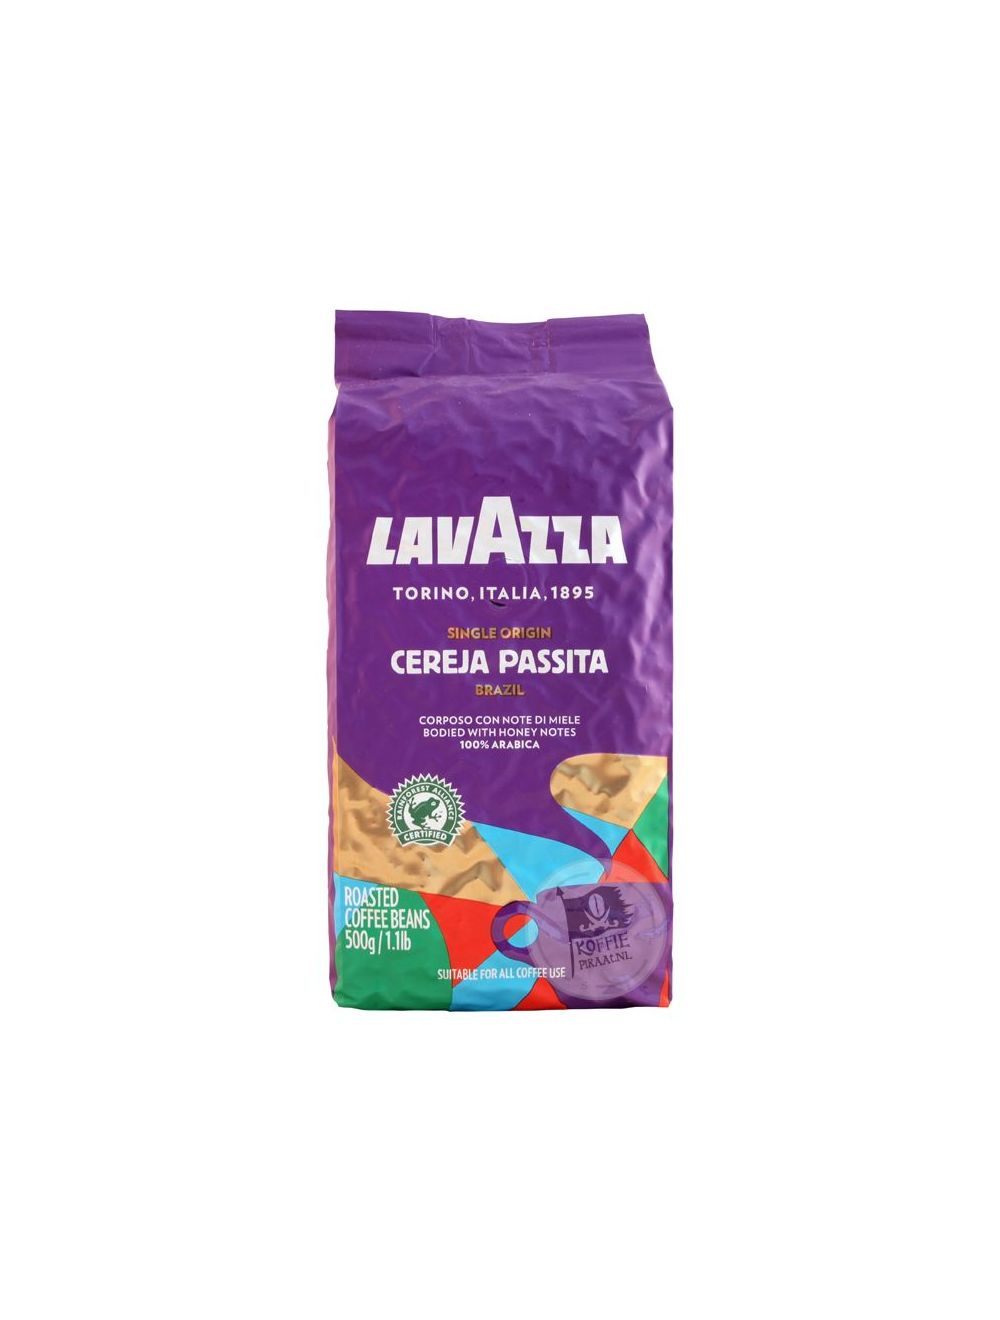 Lavazza Single Origin Cereja Passita coffee beans